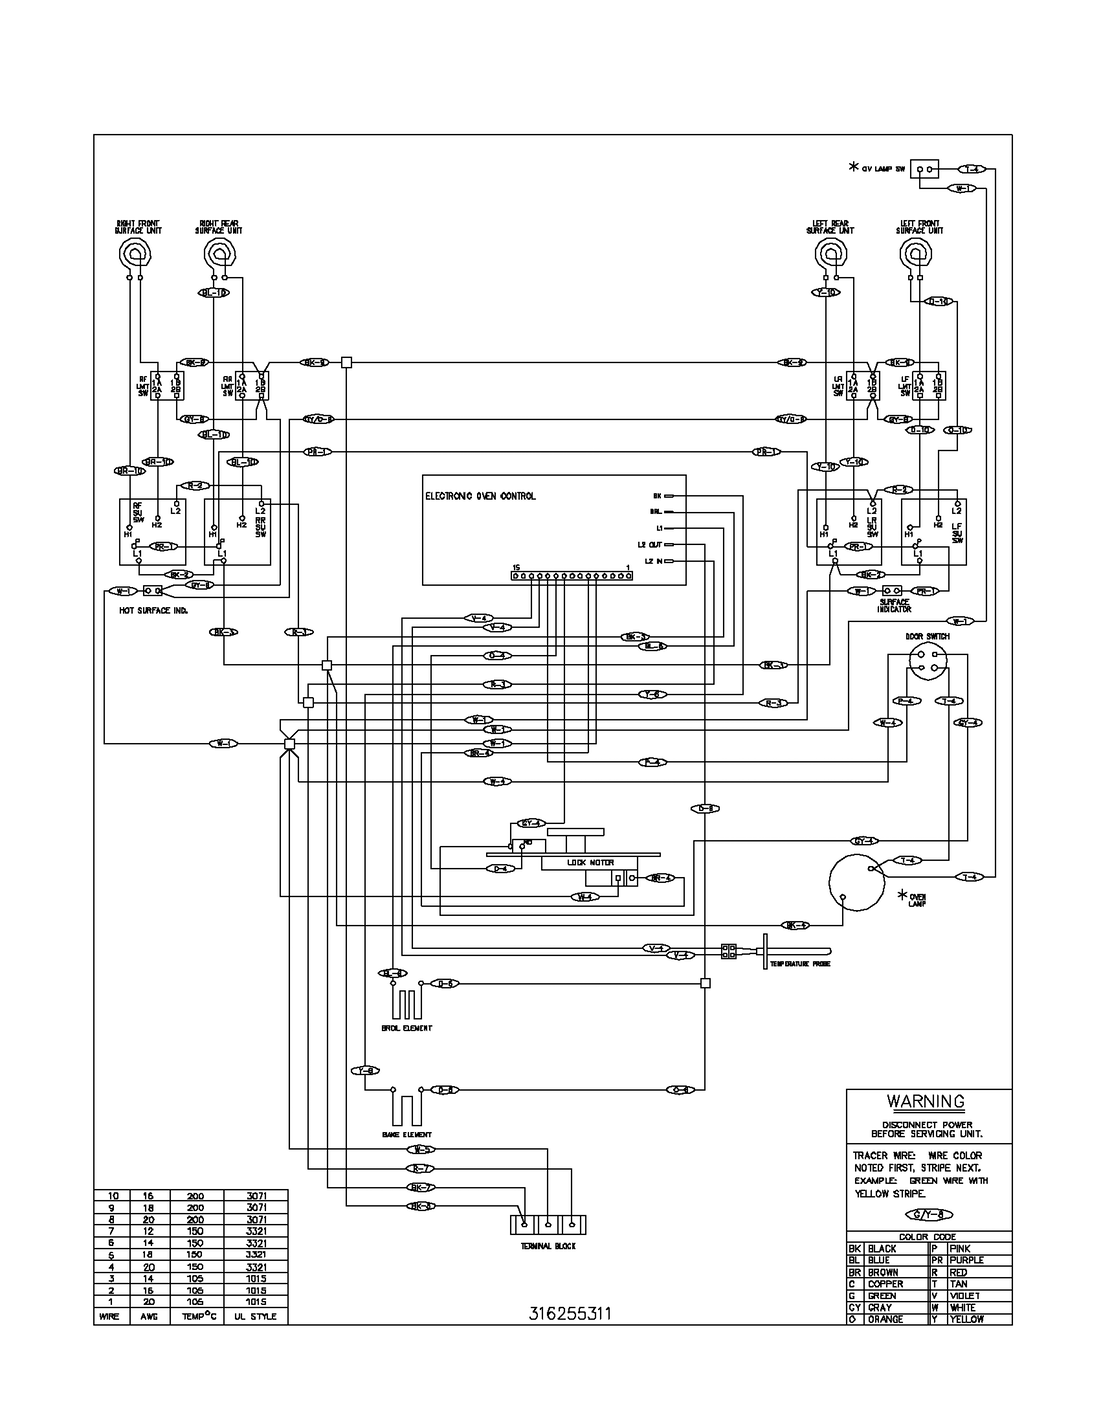 Electric Wall Heater Thermostat Wiring